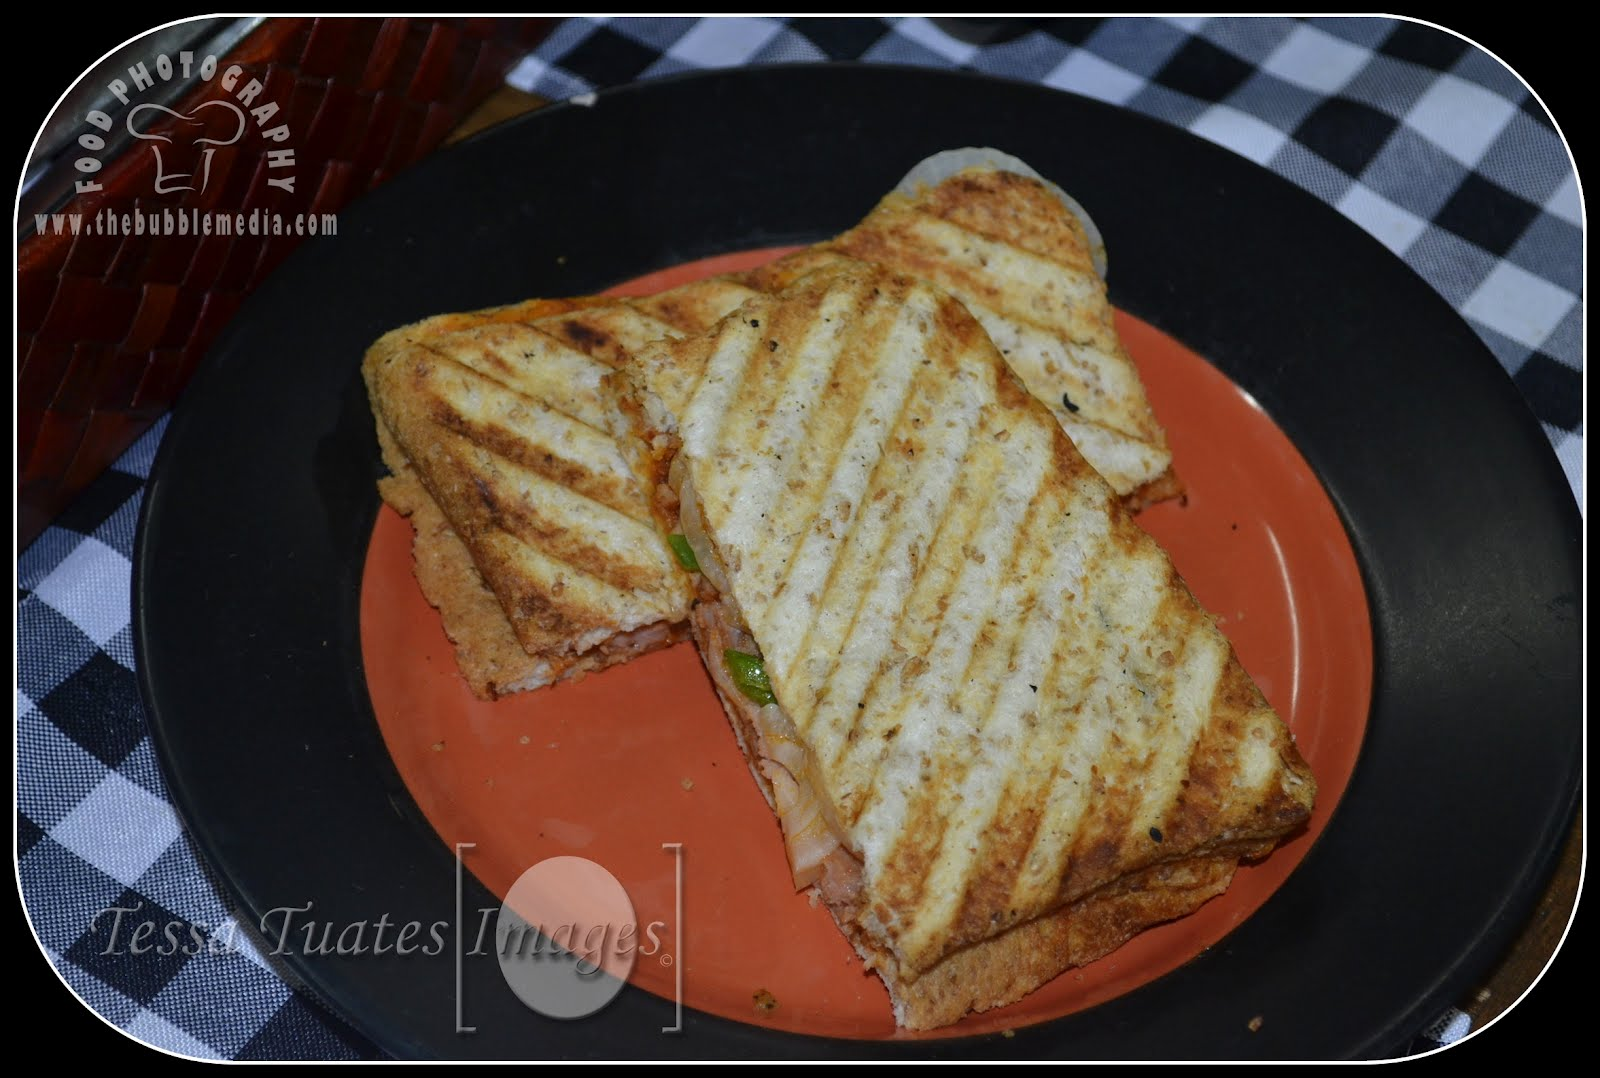 Salsicce Panini, grilled sausages, onions, bellpepper mozzarella cheese and pizza sauce in pressed whole wheat bread. http://www.thebubblemedia.com/